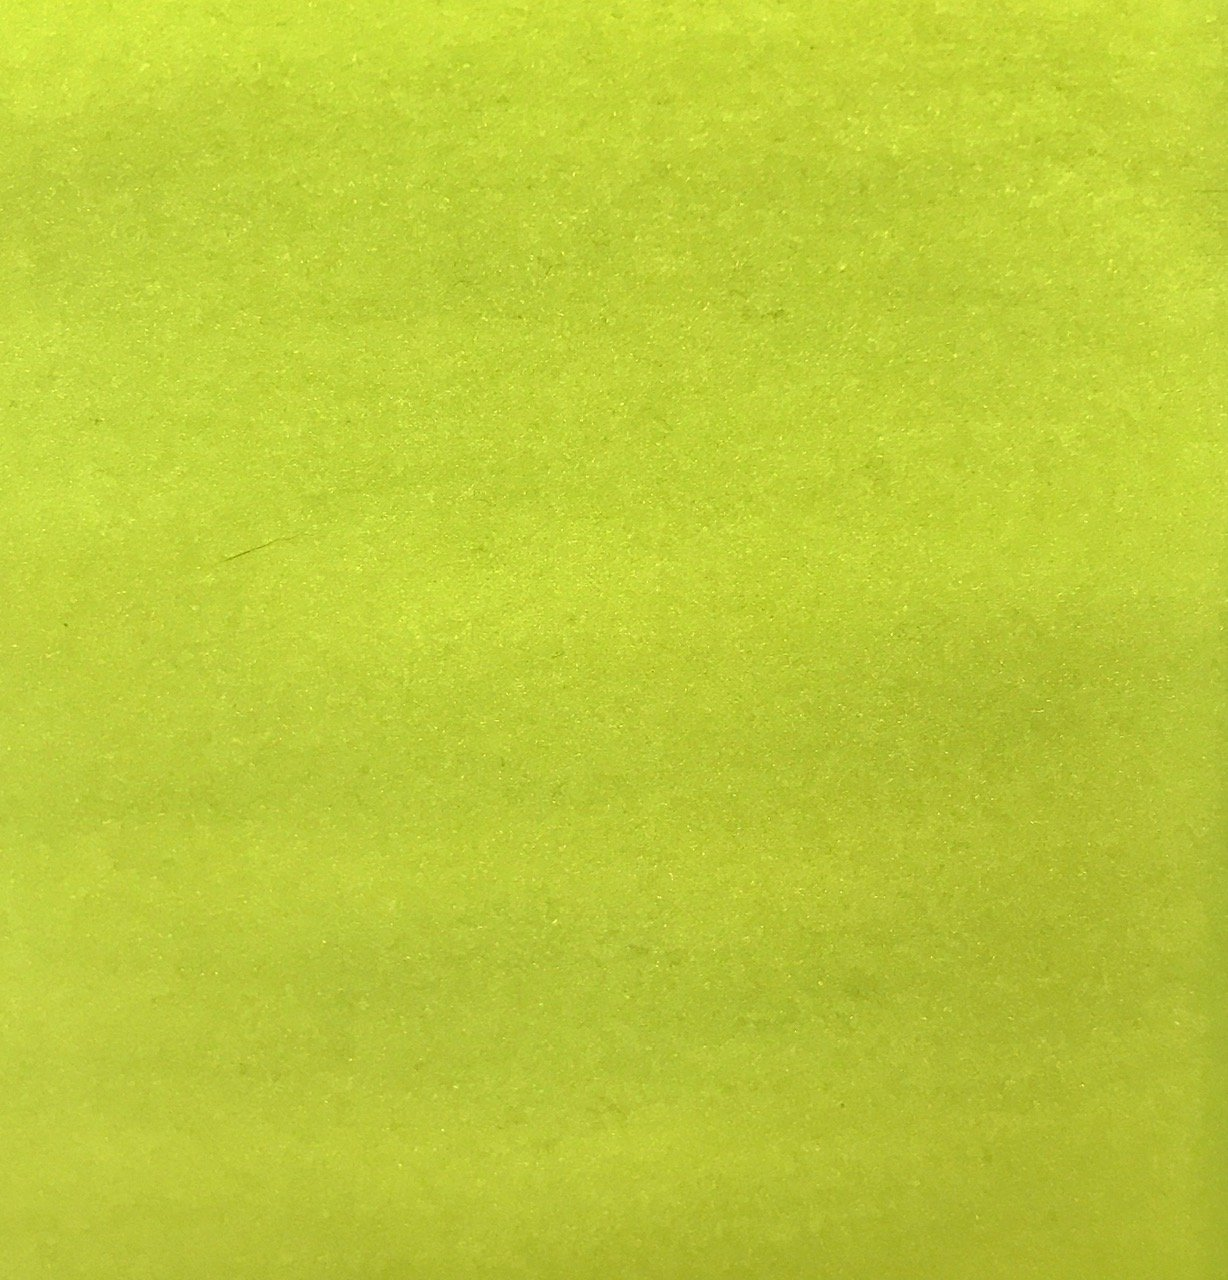 P200 - Safety Yellow